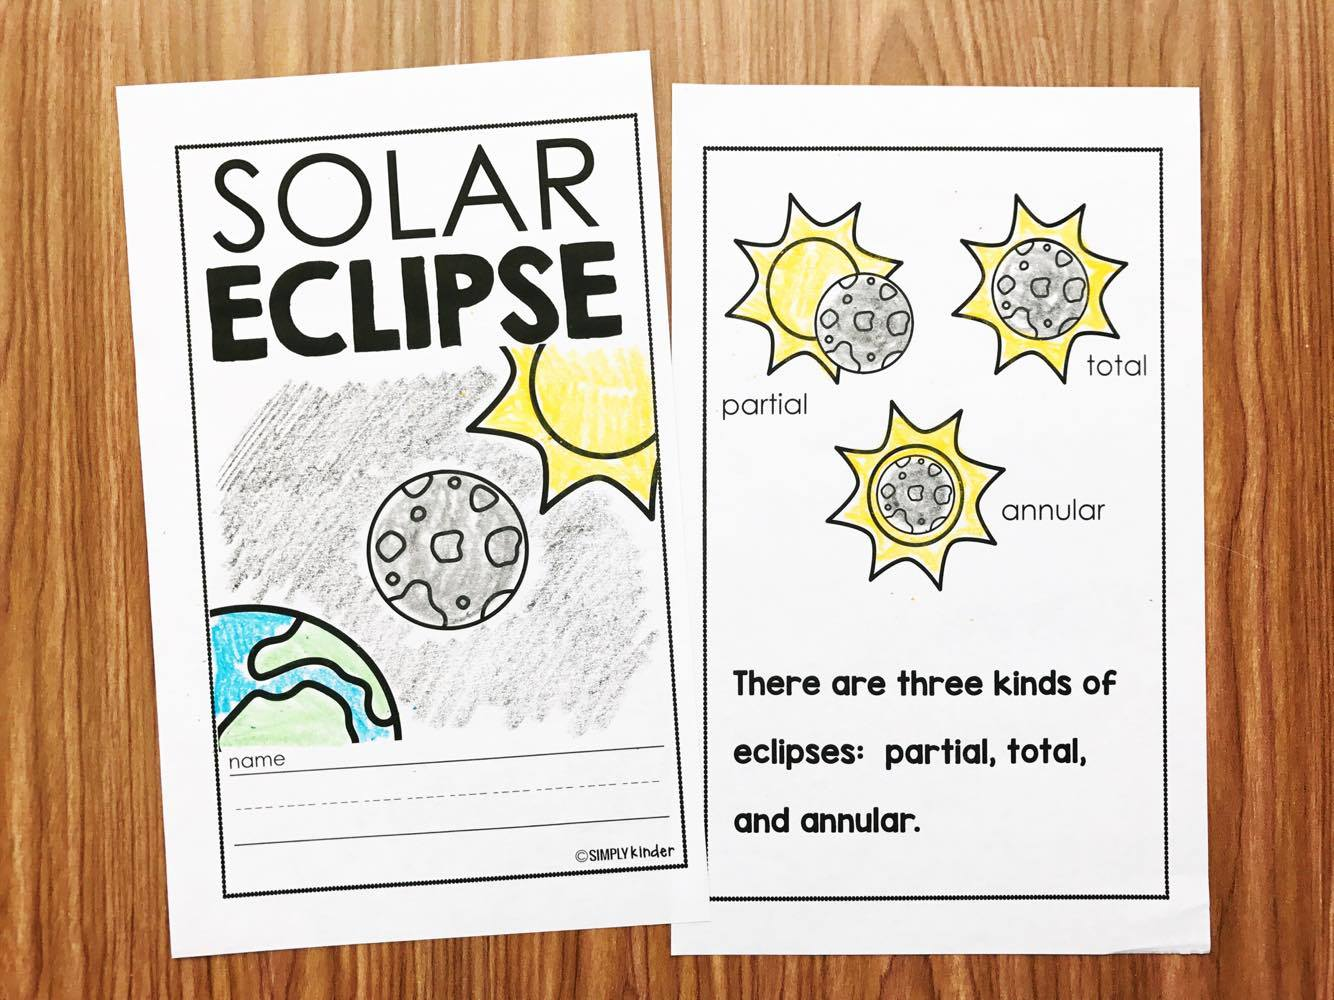 Solar Eclipse Book for Kids from Simply Kinder!